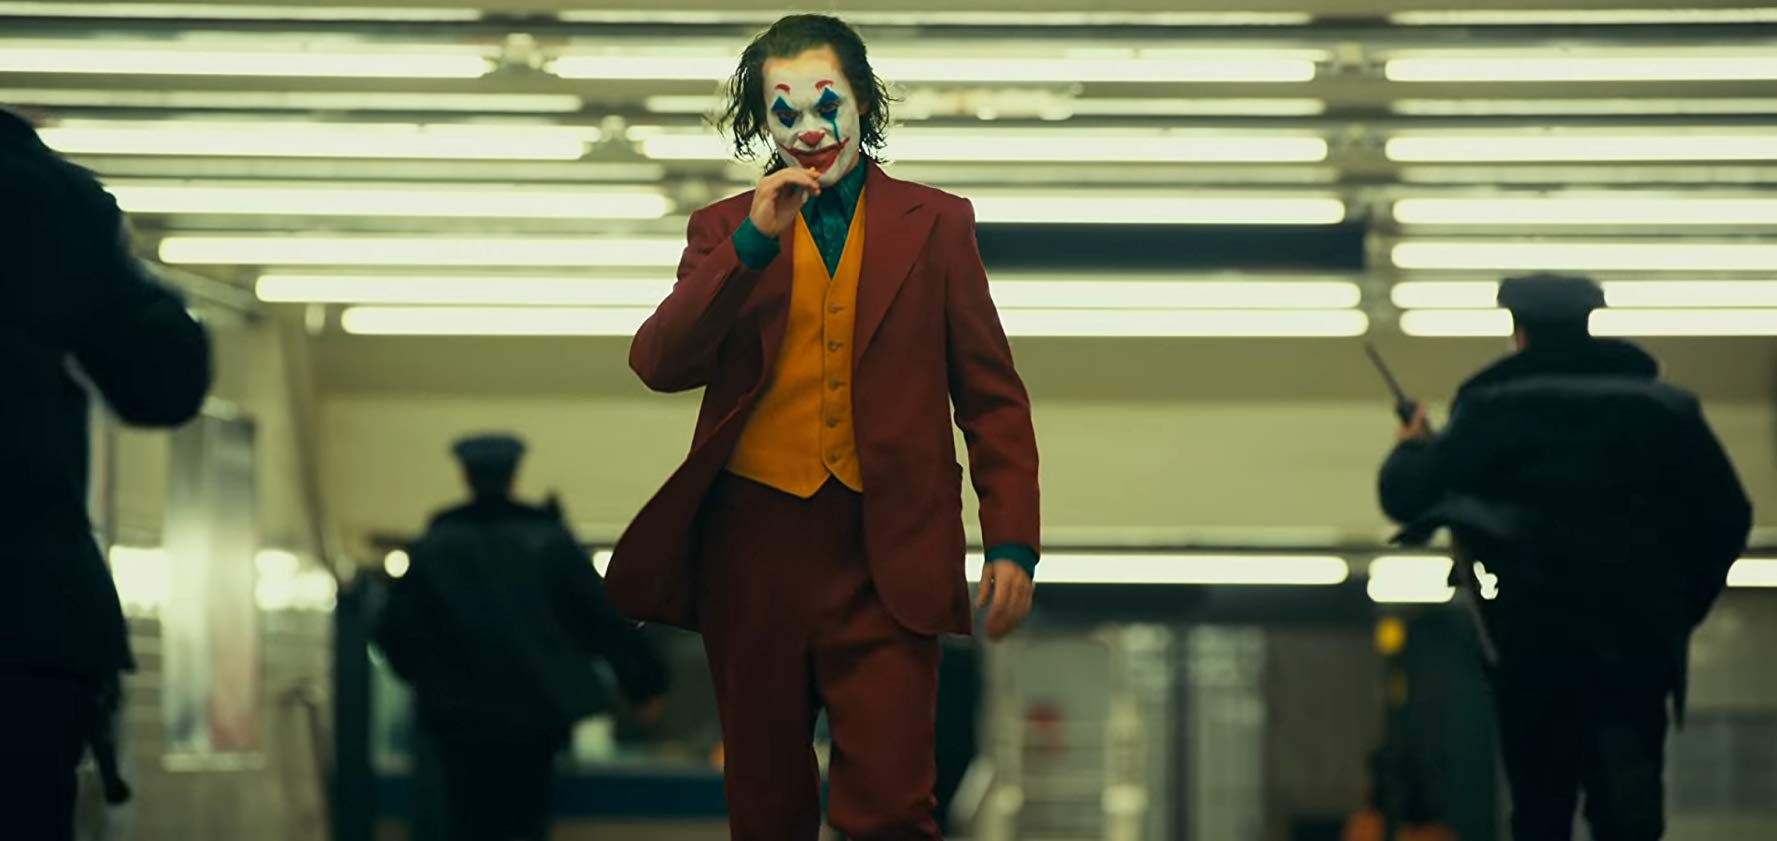 The Joker Trailer Feels Very 2019. That's the Problem.